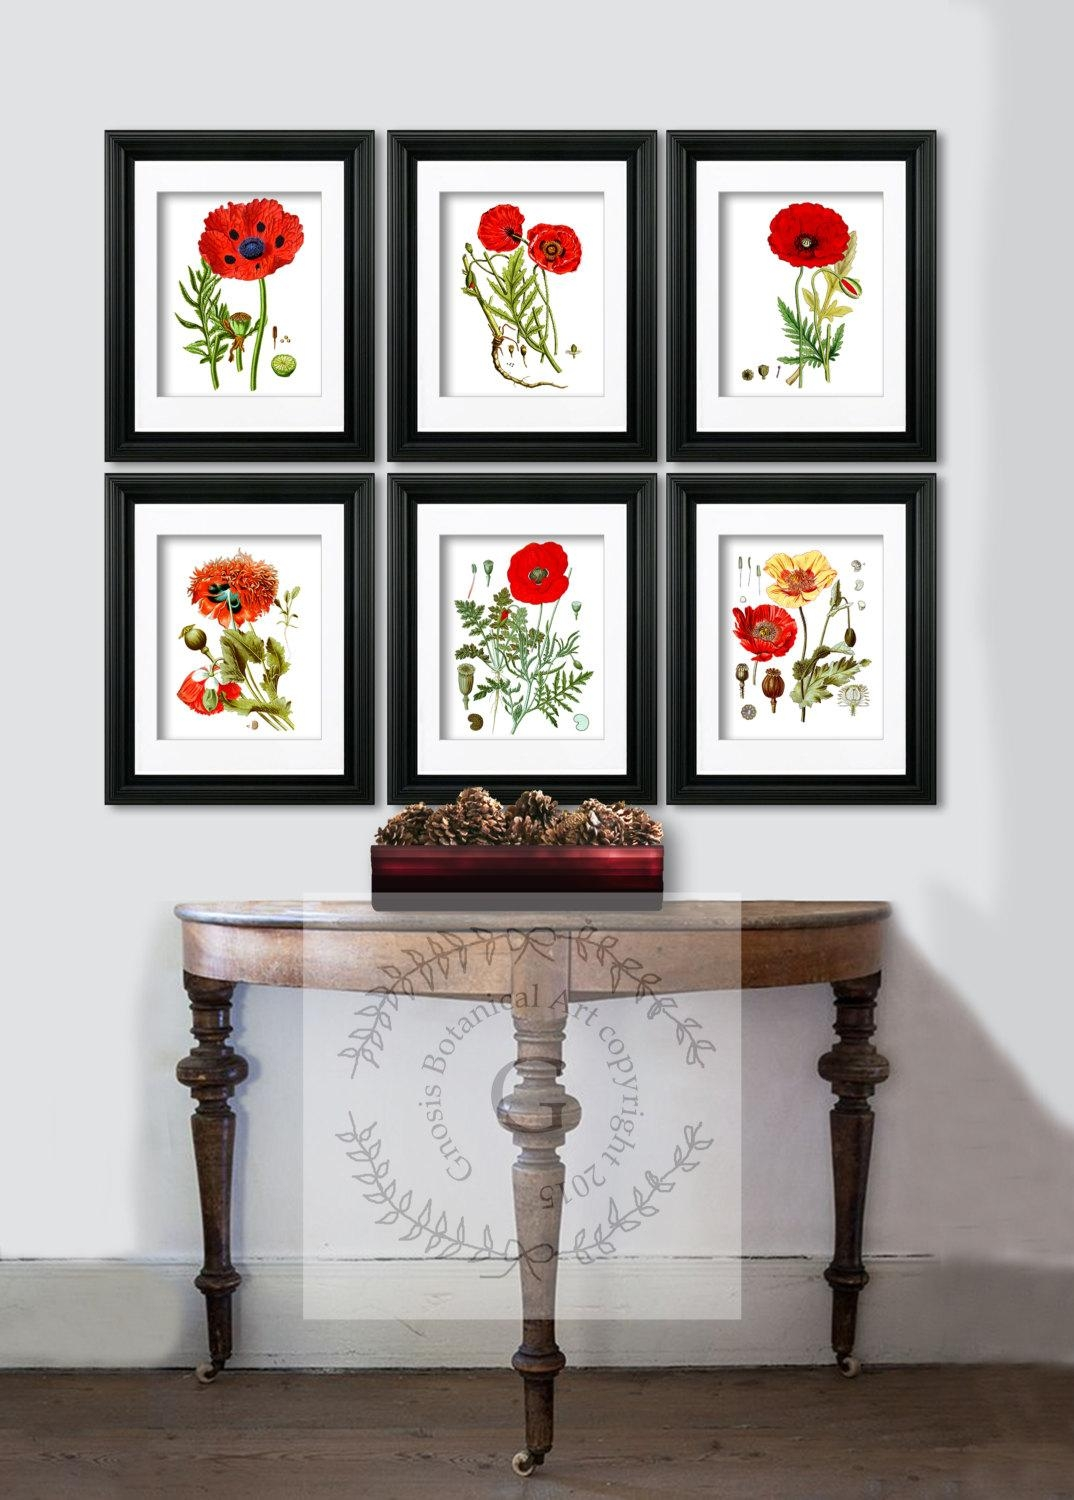 Red Poppy Decor Botanical Prints Red Flowers Poppy Wall Art In Wall Art Print Sets (Image 8 of 20)